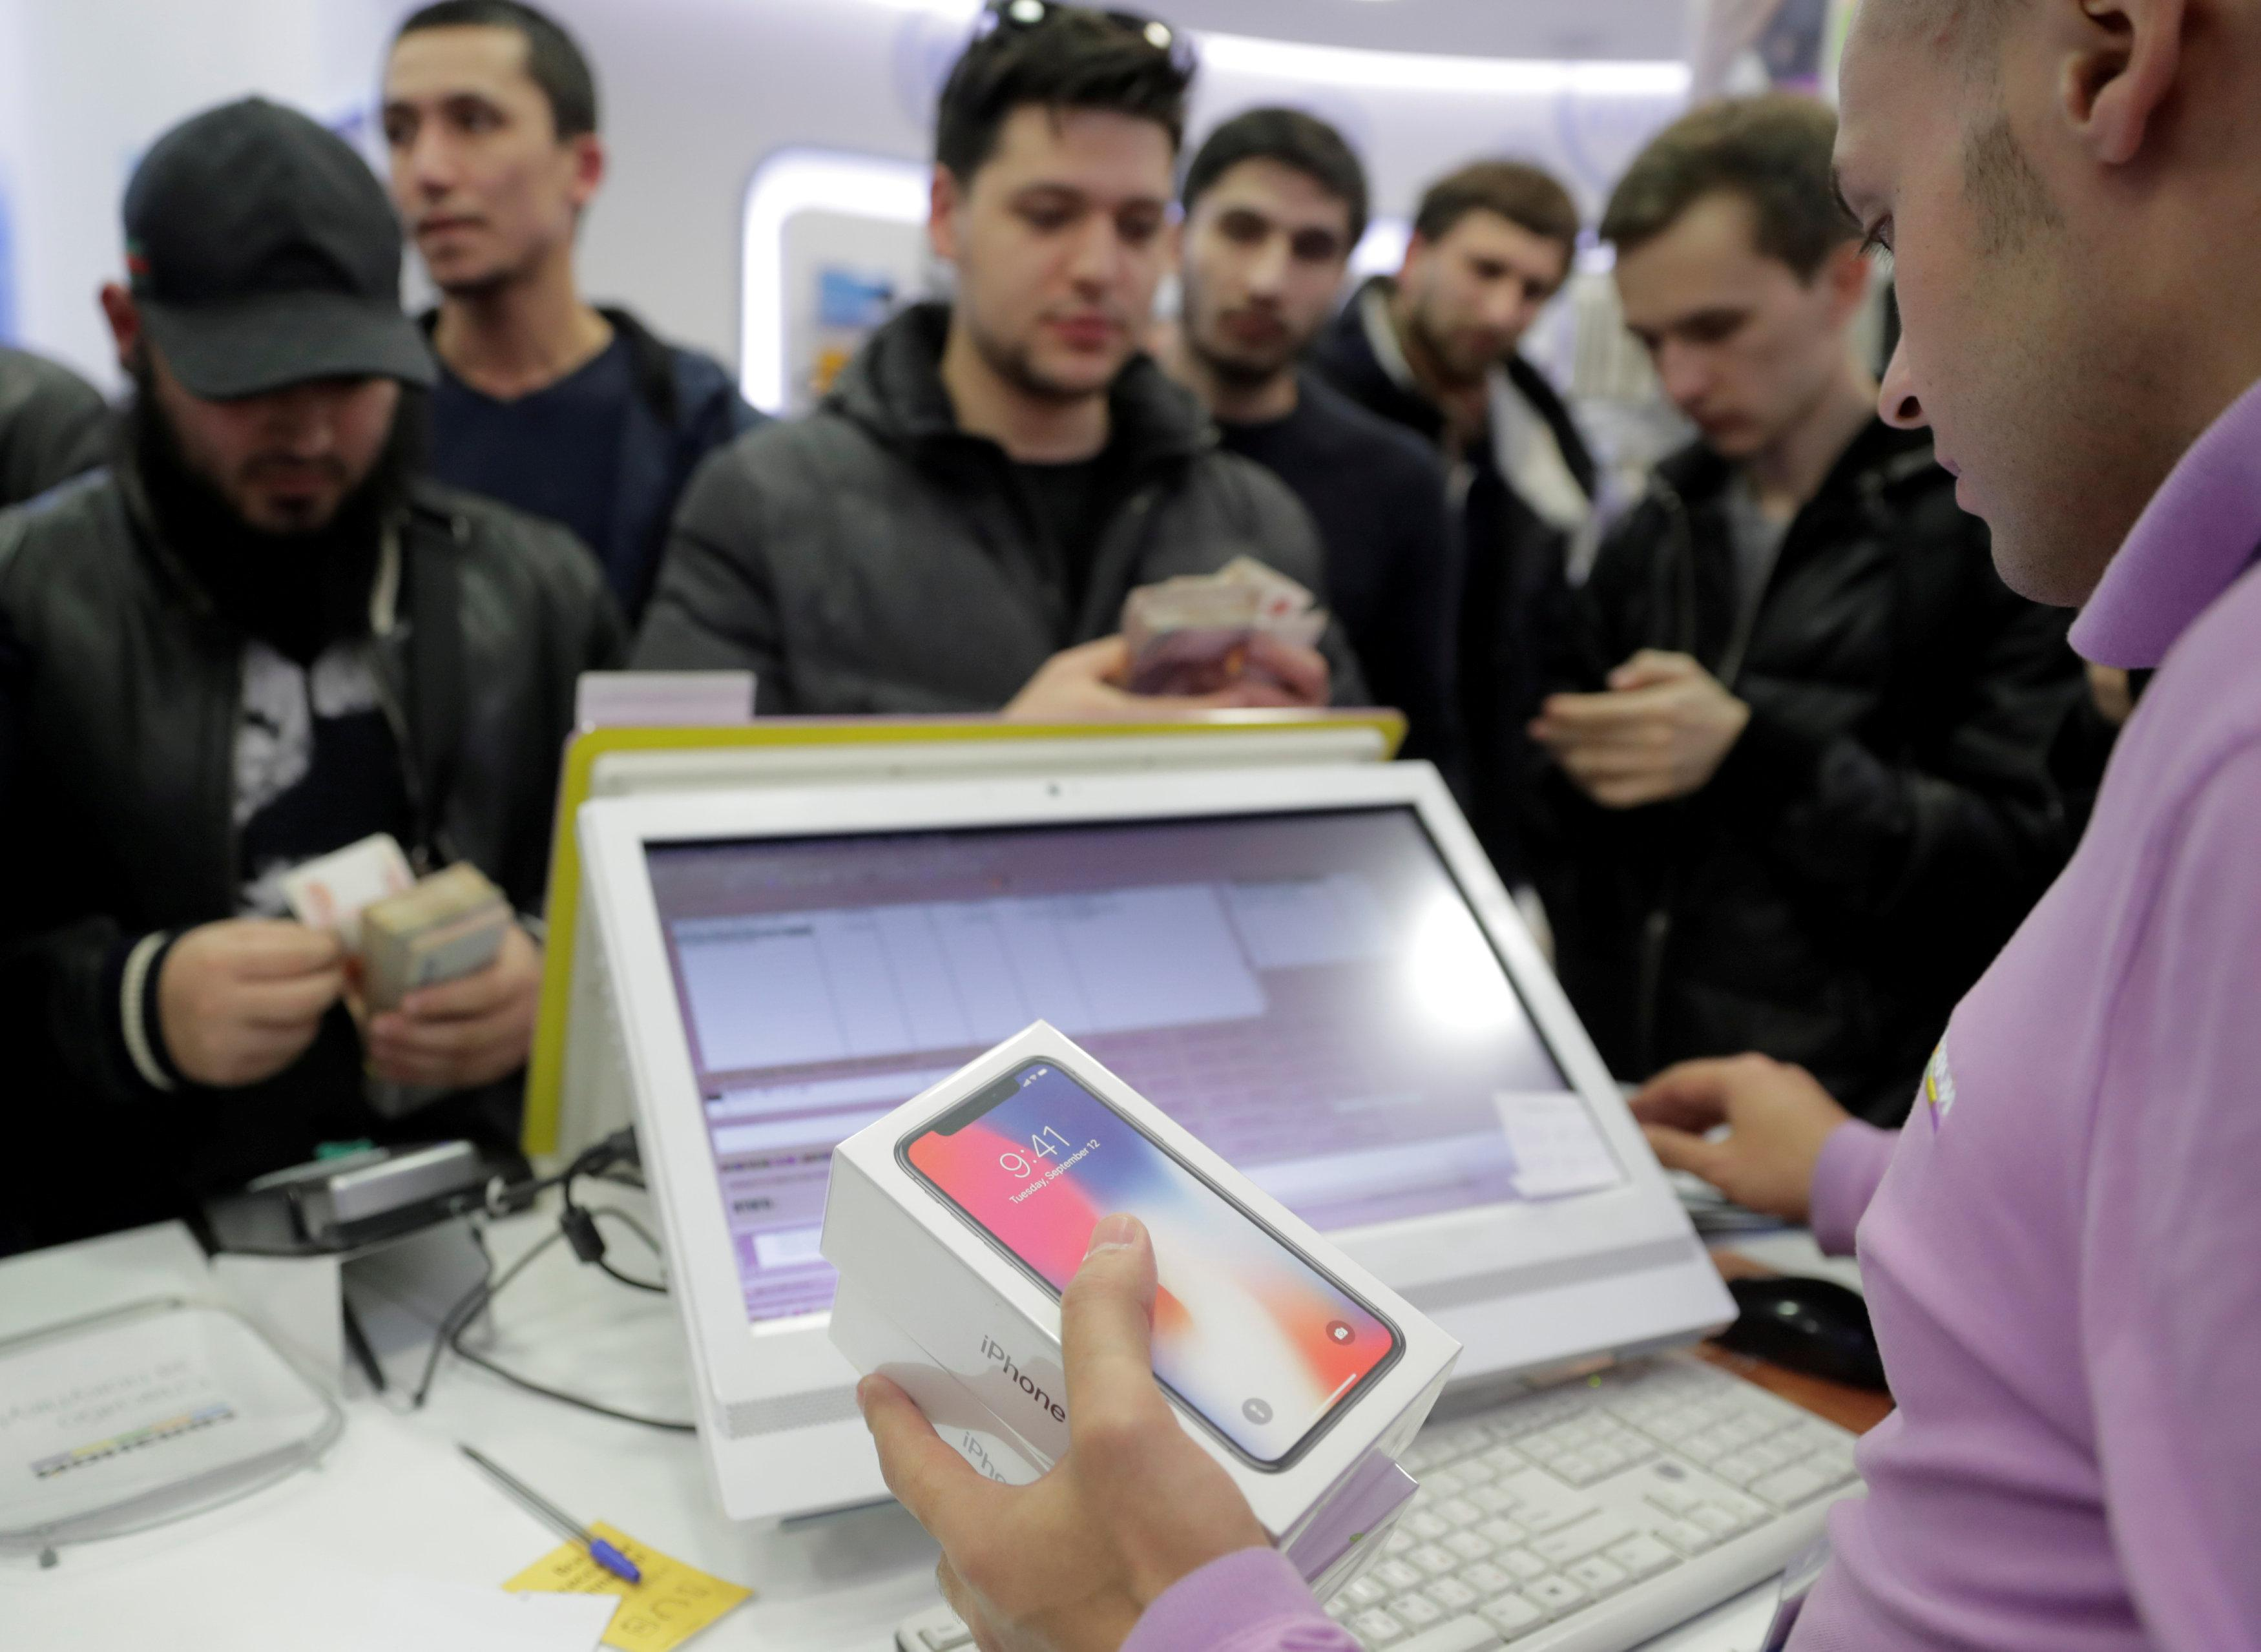 A store employee sells Apple's new iPhone X to first customers during its global launch at a cell phone store in central Moscow, Russia November 3, 2017. Tatyana Makeyeva